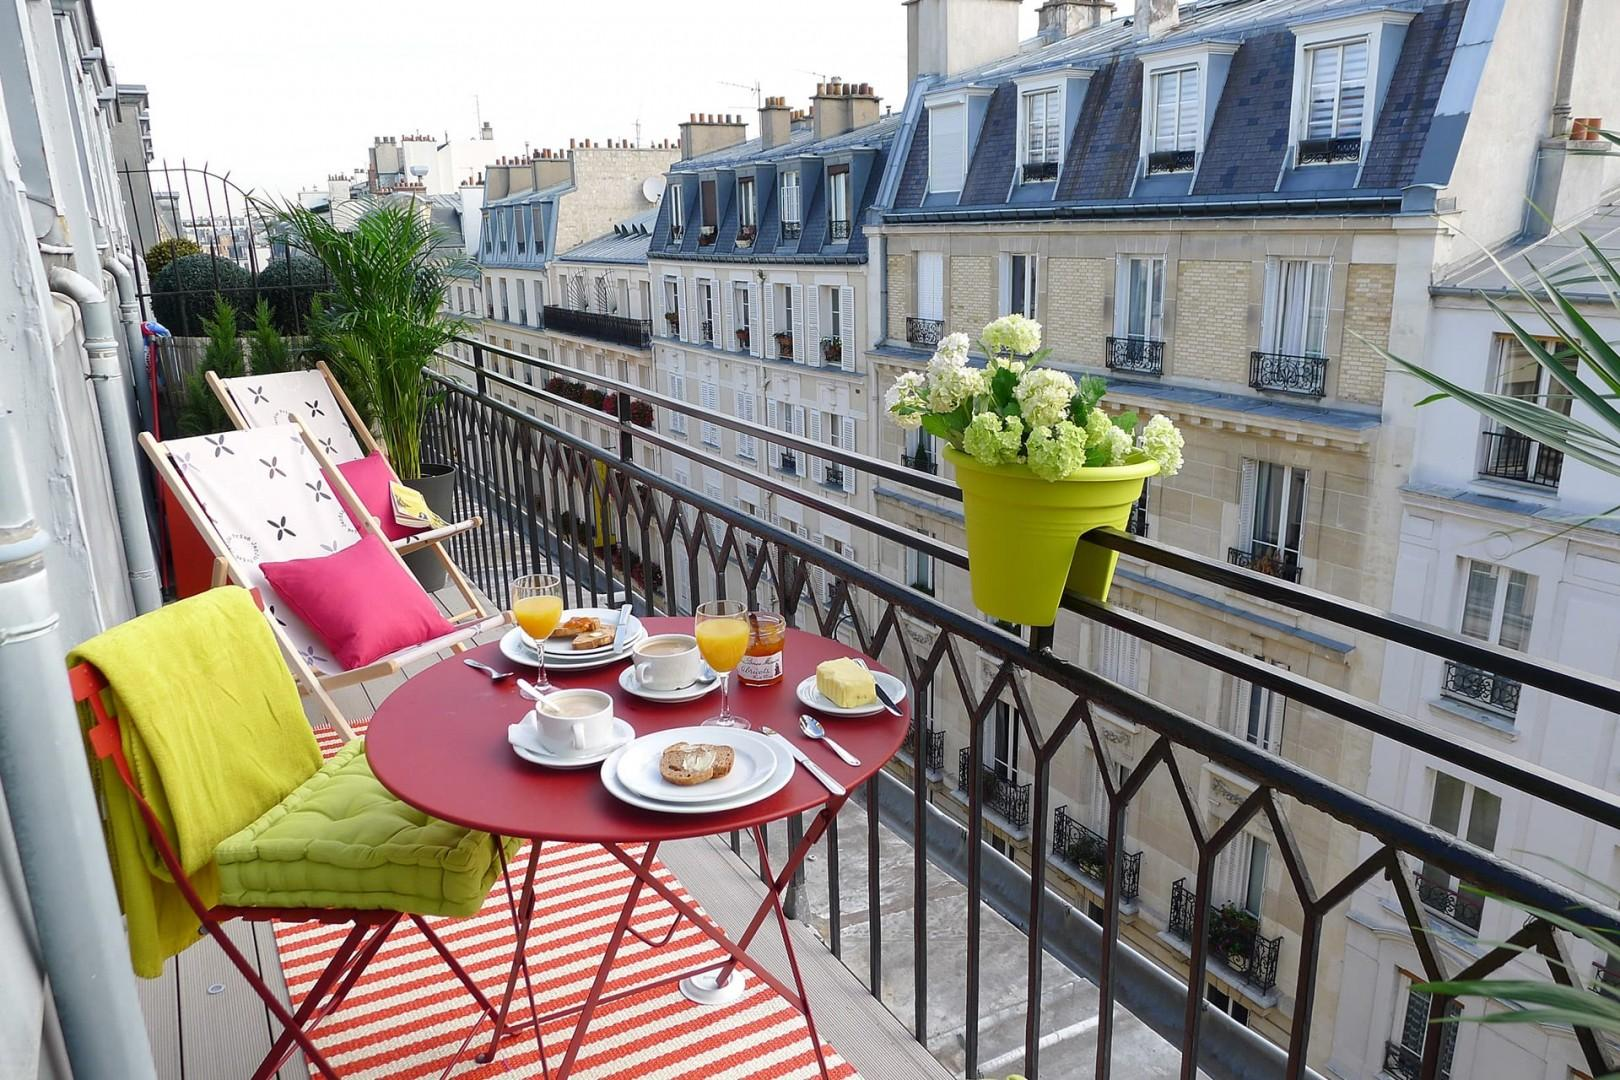 The balcony is long enough for small bistro table and chairs.